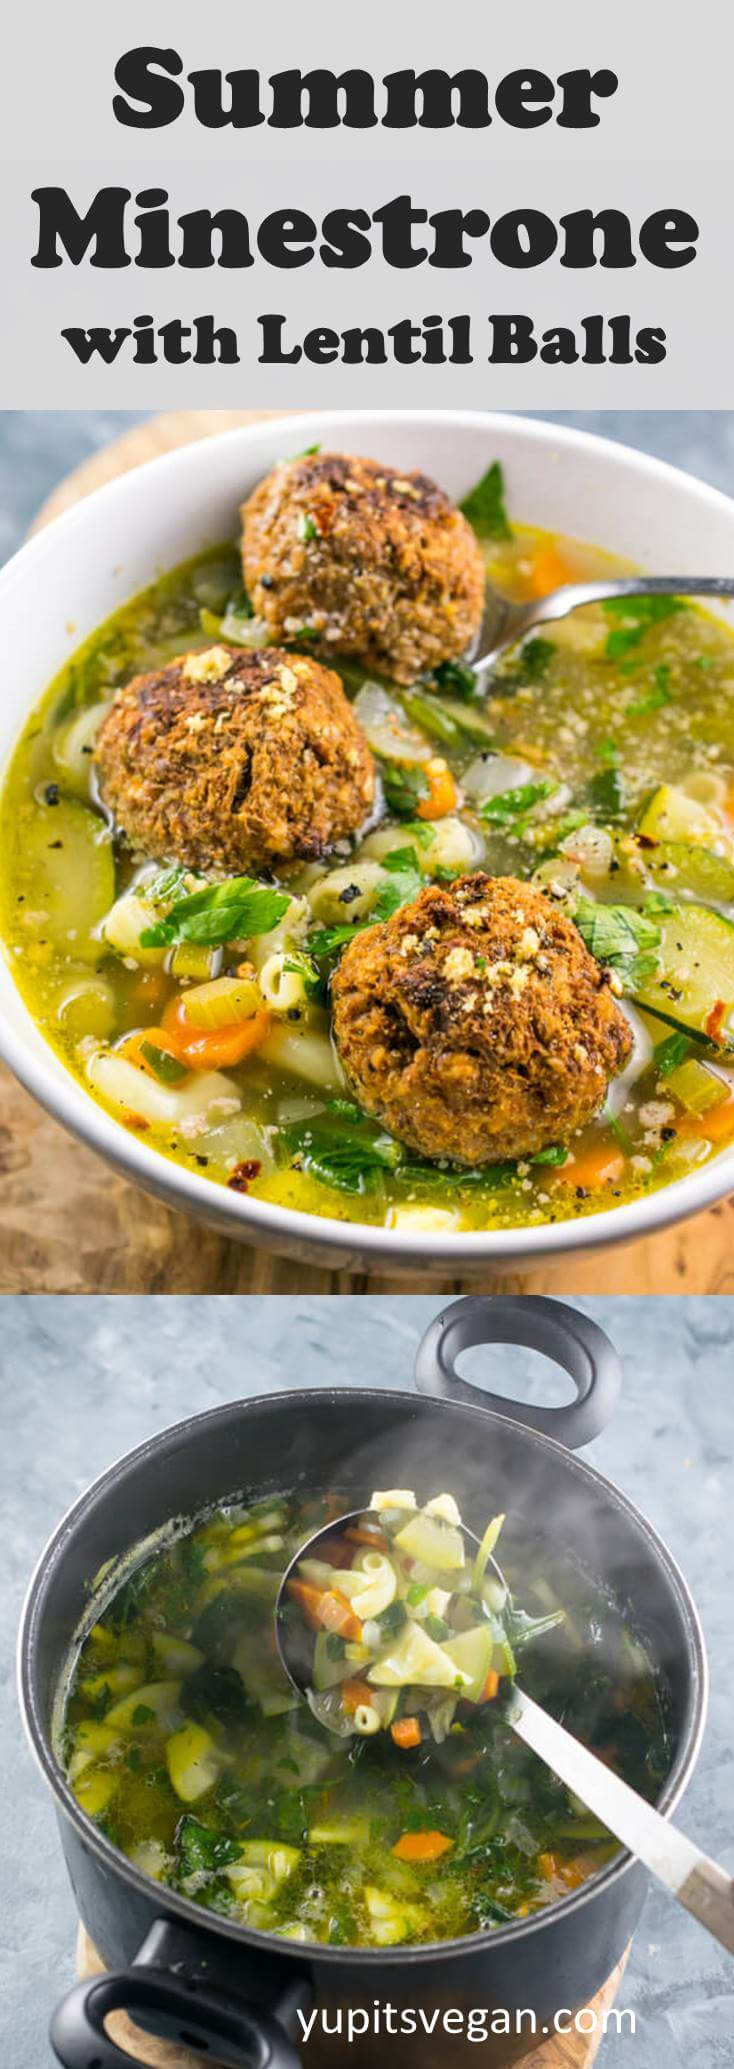 Vegan Summer Minestrone with Lentil Balls: A soup of summer vegetables and pasta with Italian flavors, made vegan-style and served with homemade lentil balls for protein.